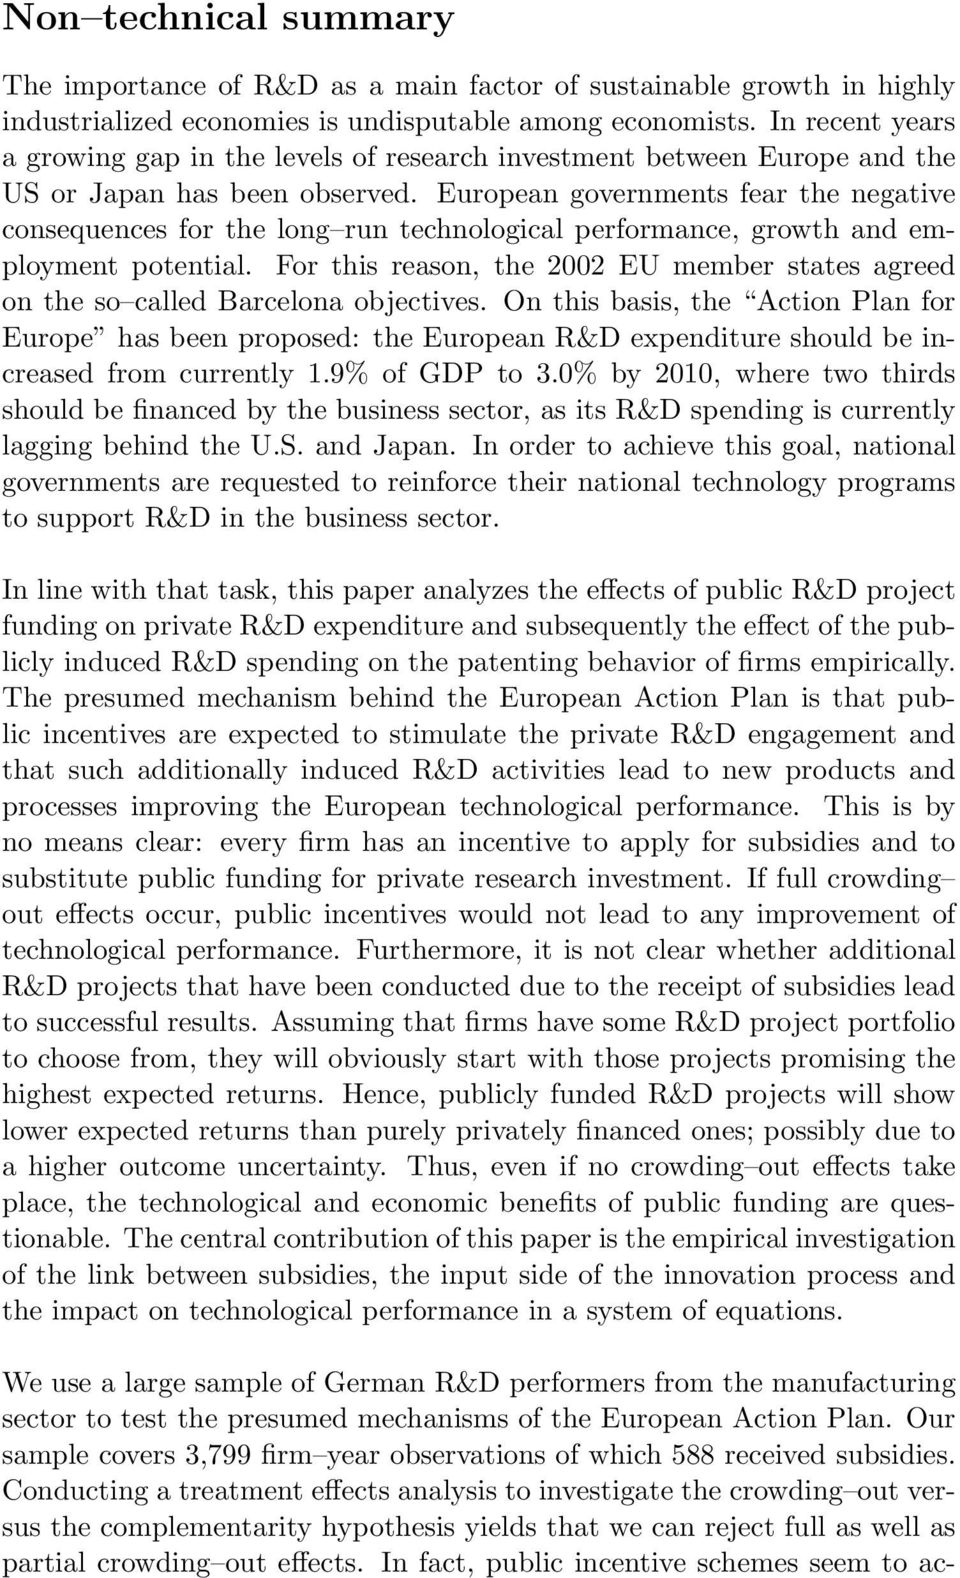 European governments fear the negative consequences for the long run technological performance, growth and employment potential.